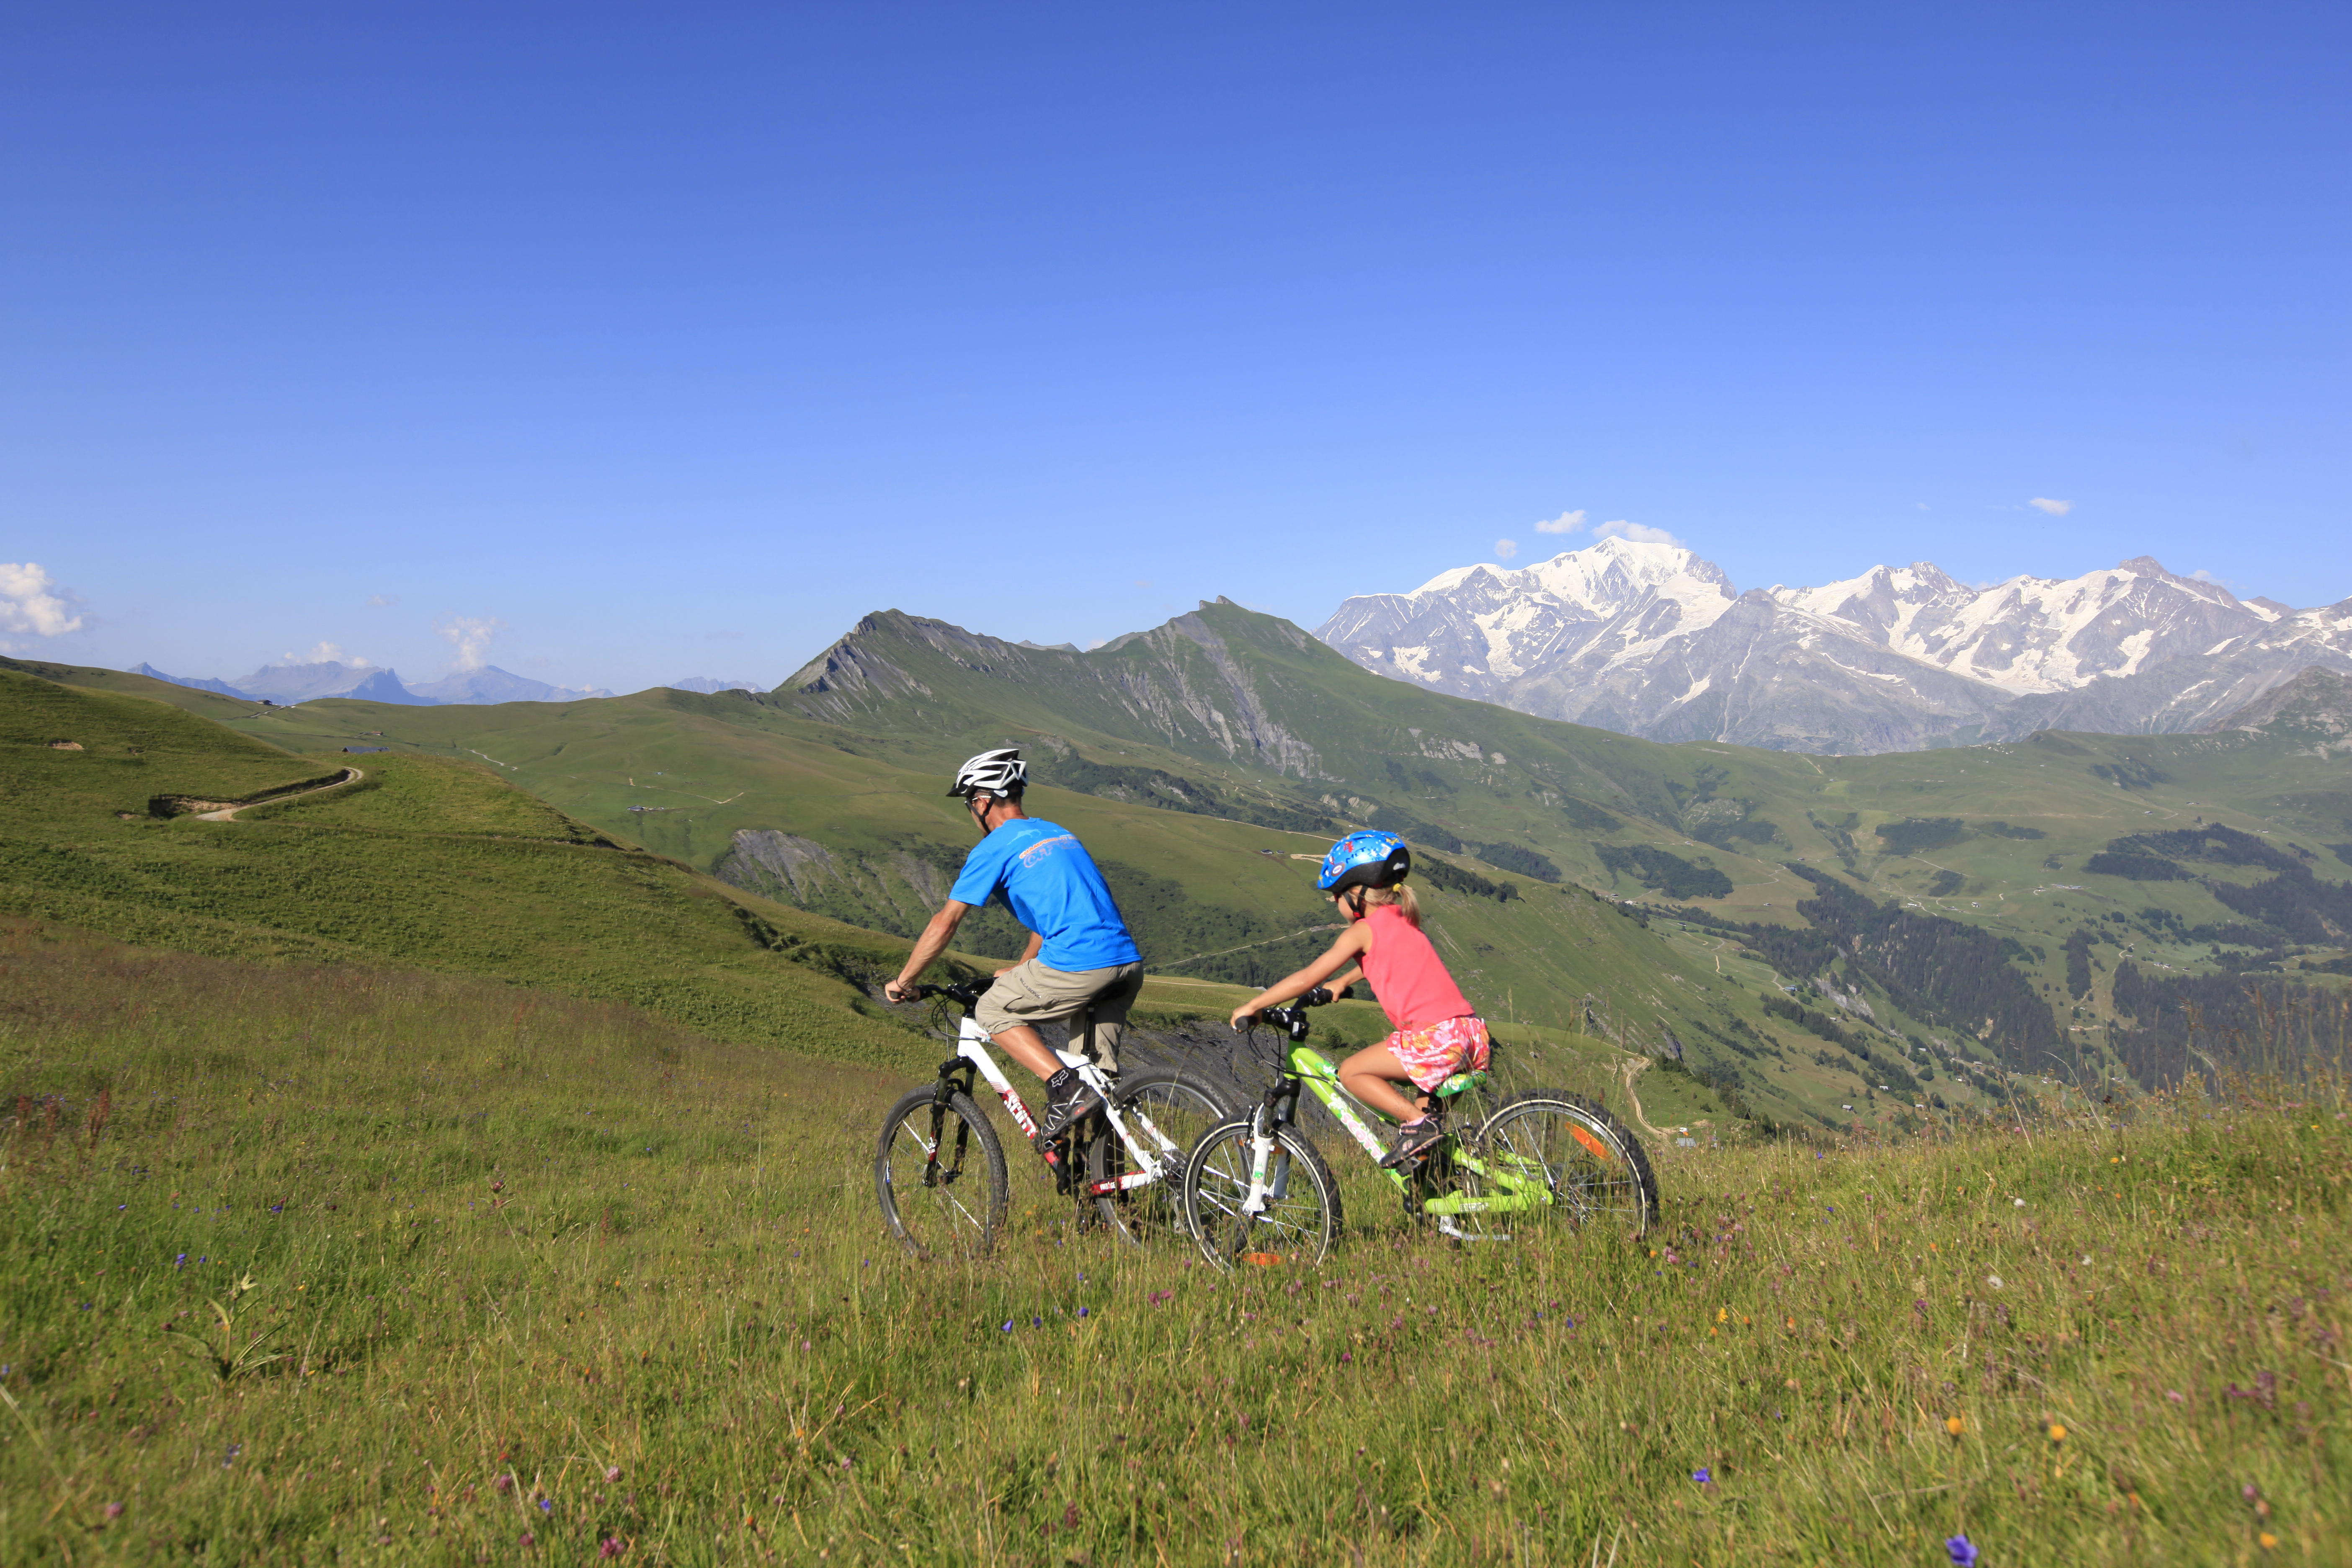 Les Saisies Mountains Biking